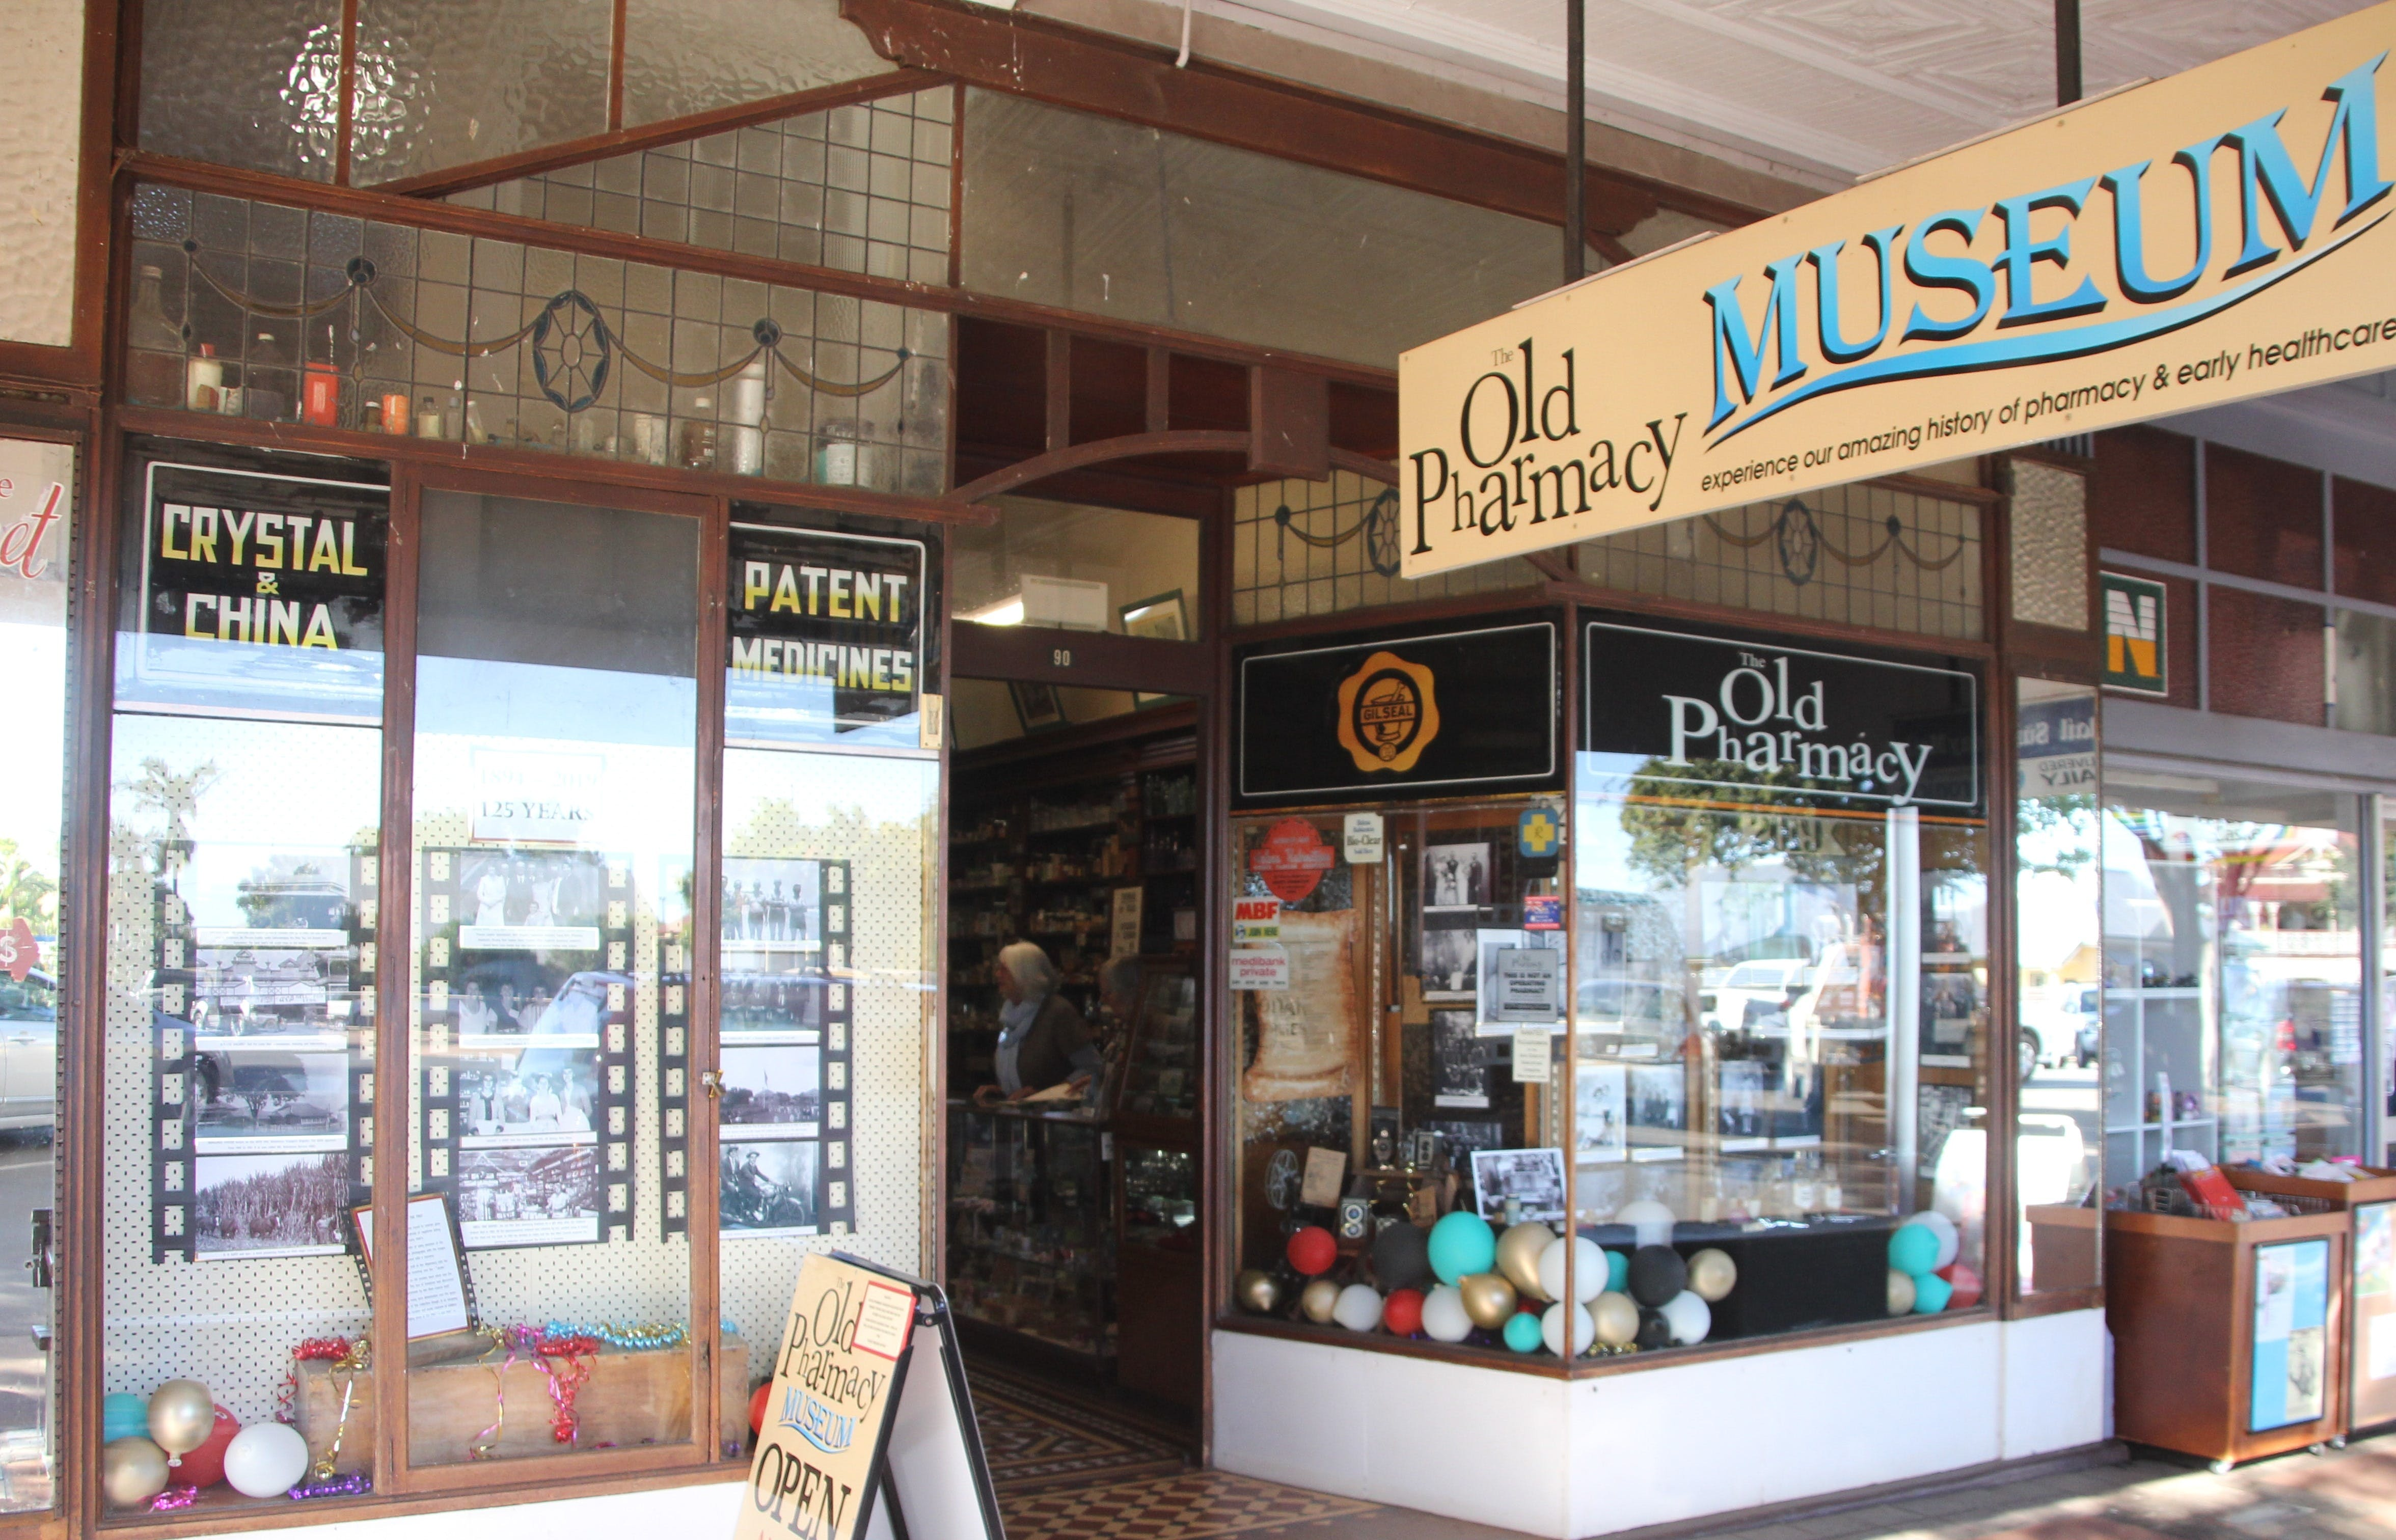 Old Pharmacy Museum  Childers - Attractions Brisbane